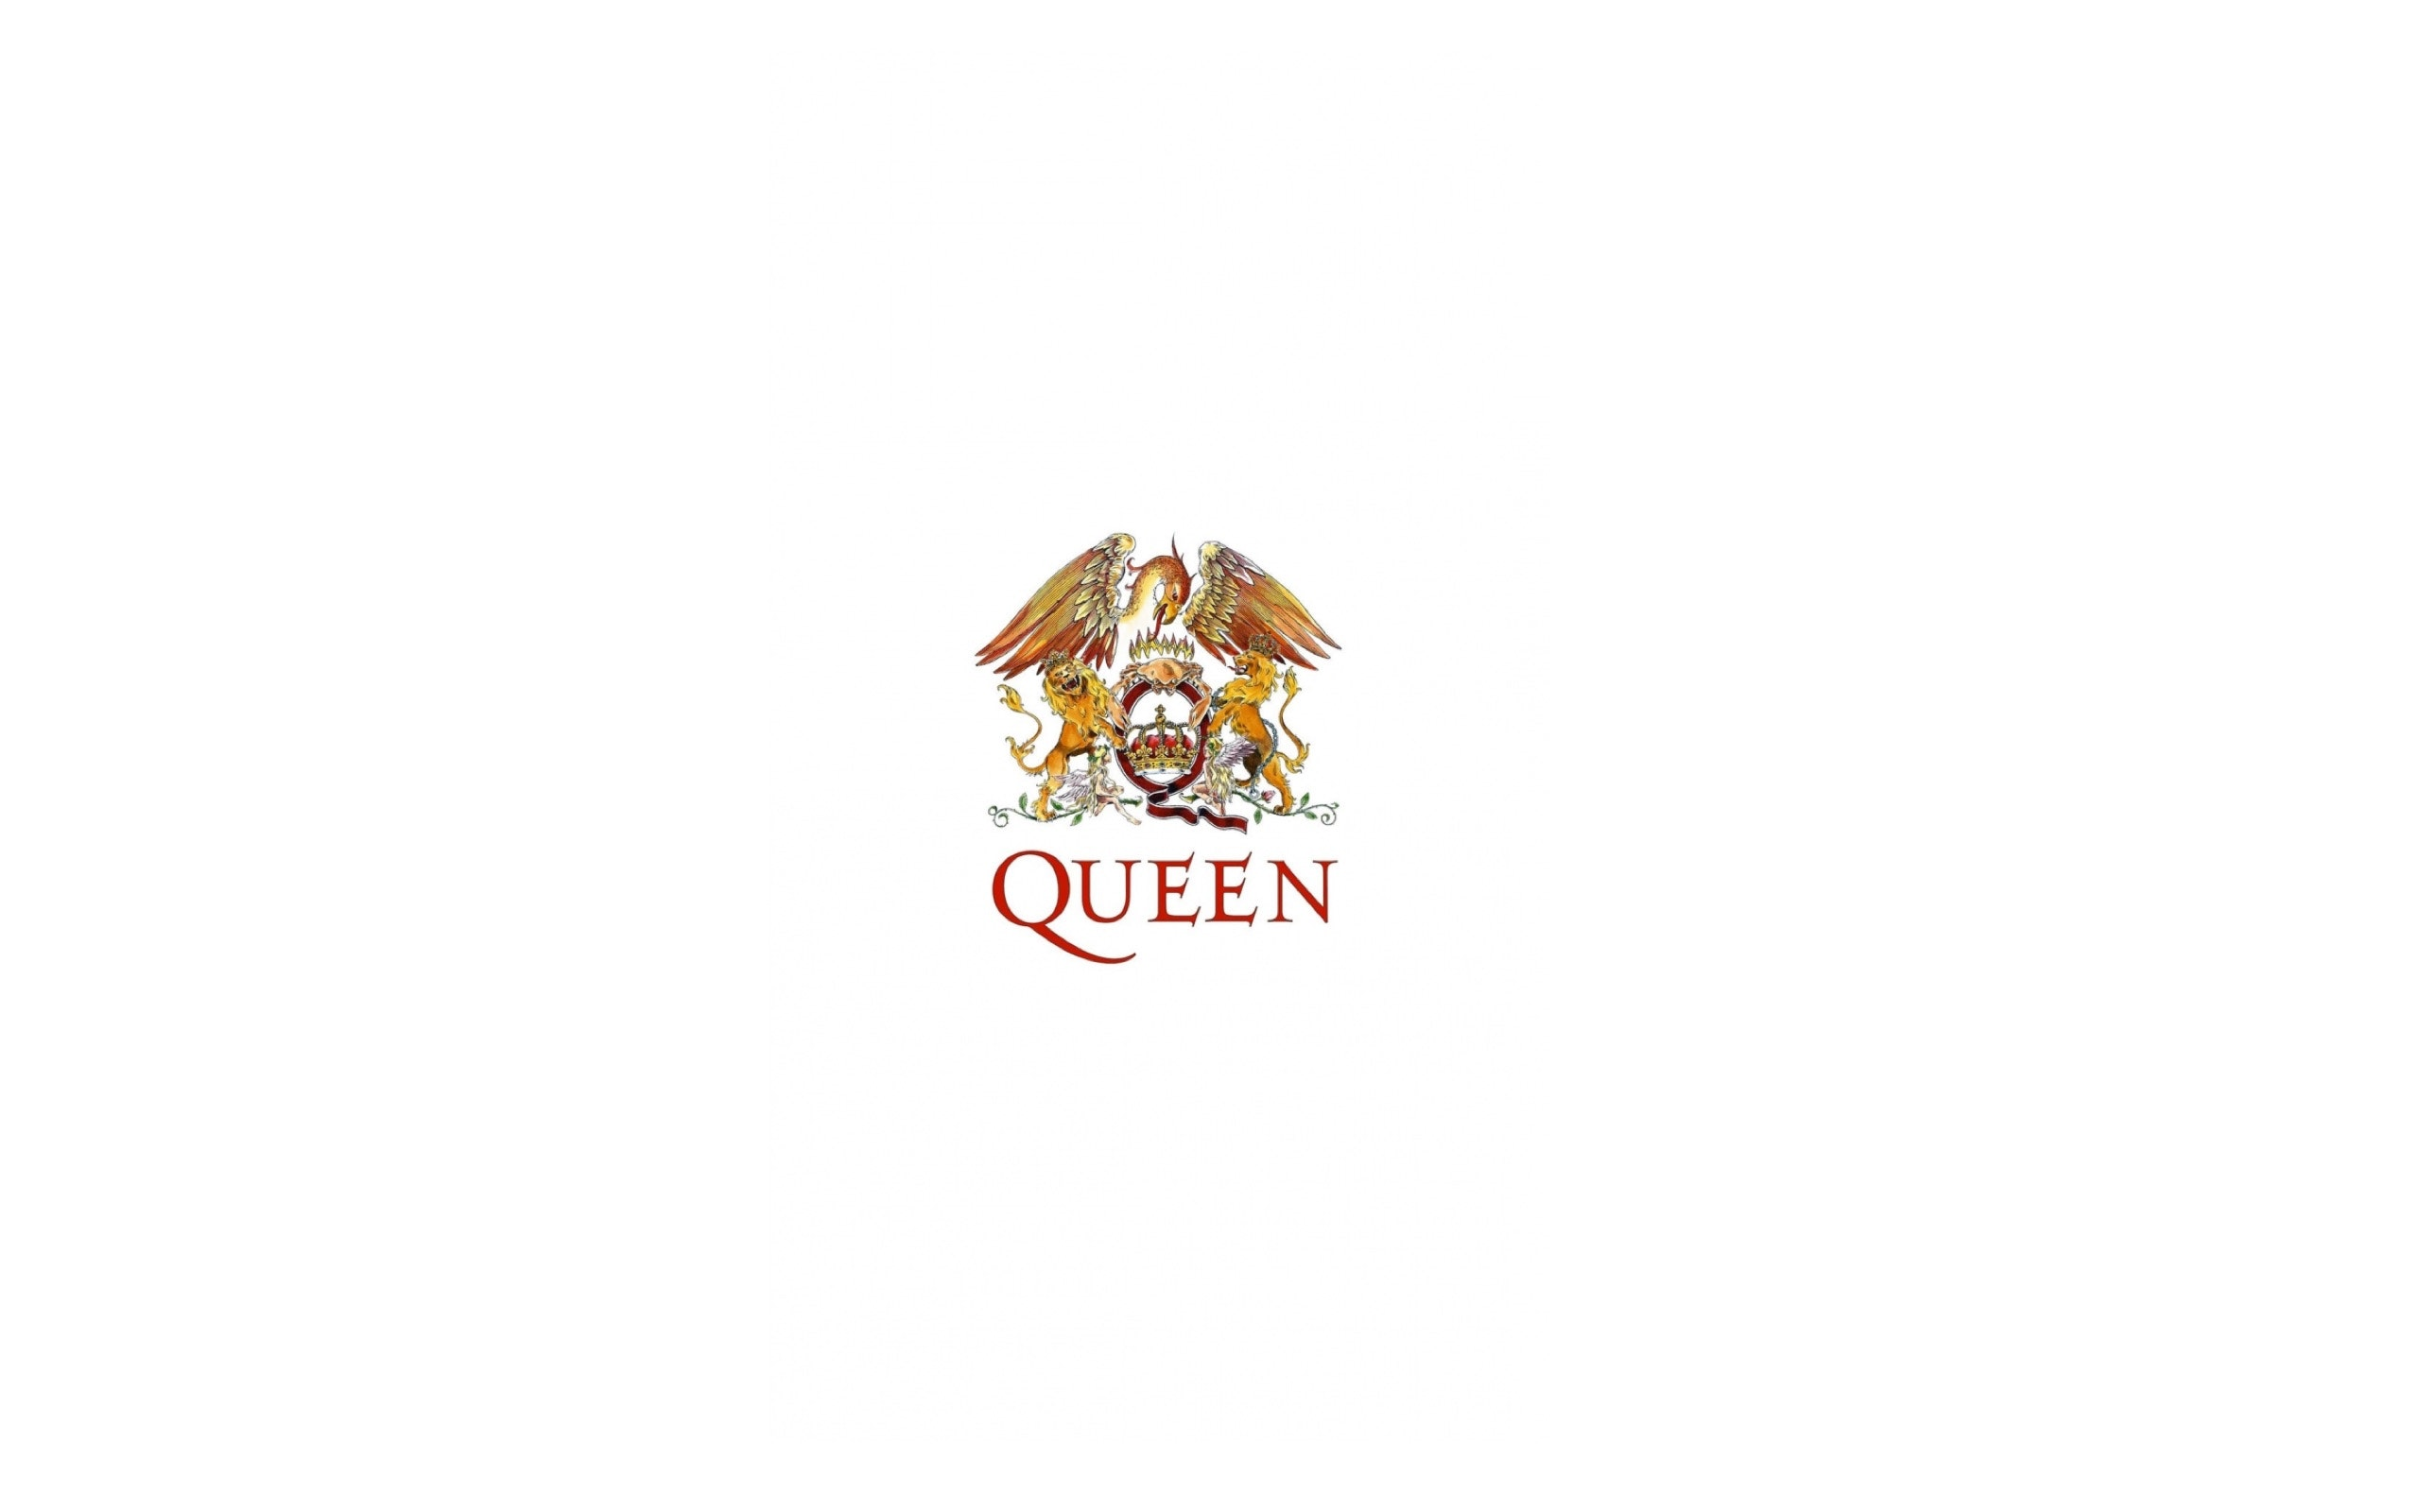 Free Stock Photo Of Logos Music Queen